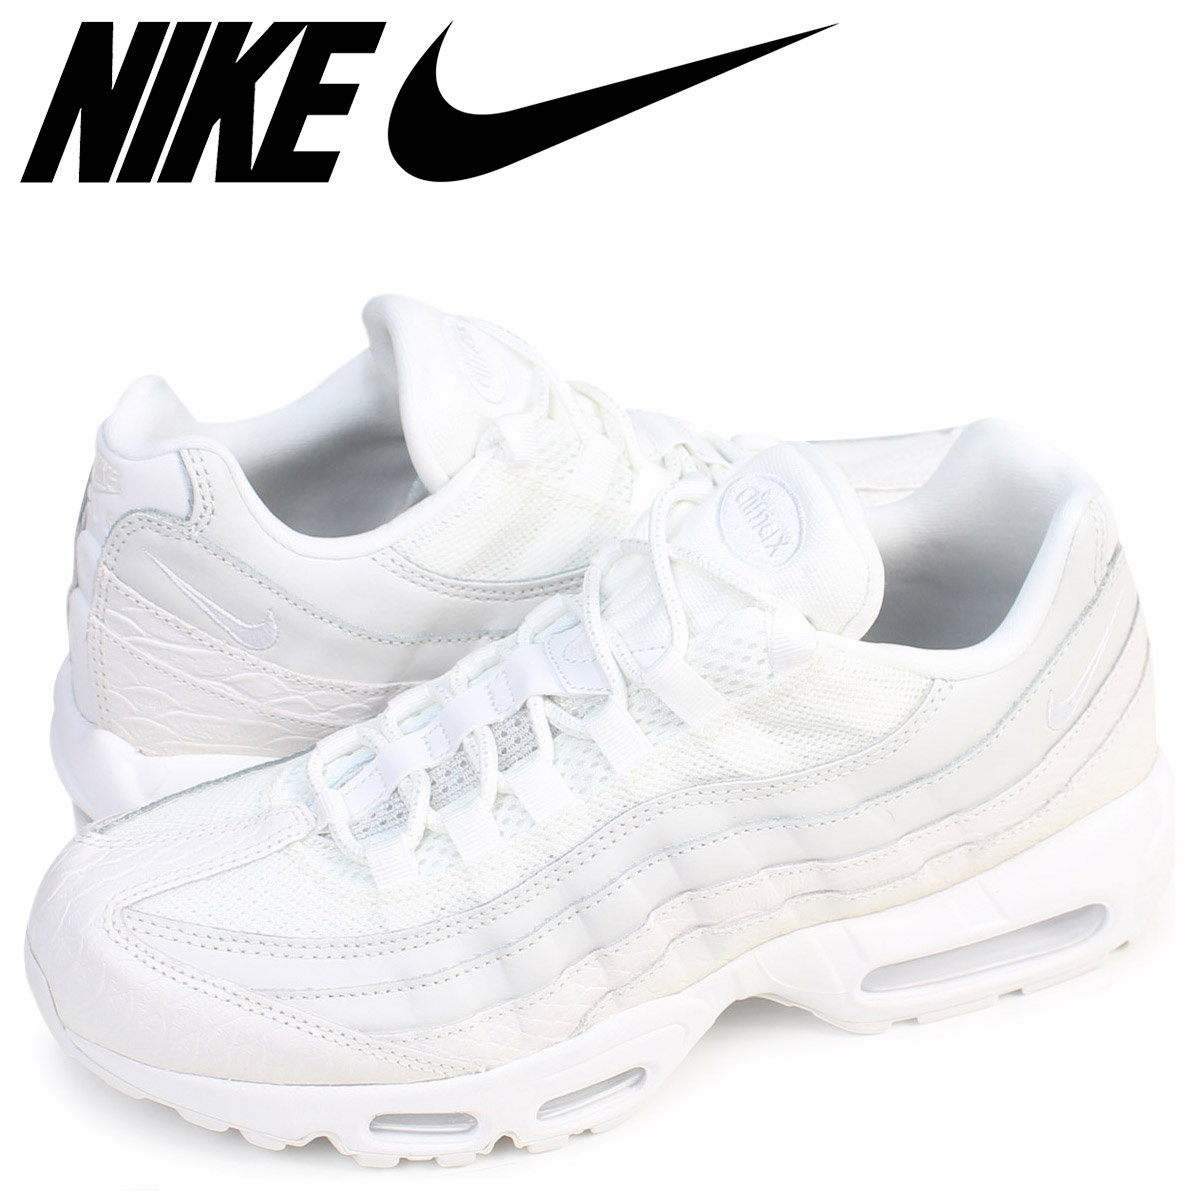 on sale c8d4e 90d88 Nike NIKE Air Max 95 sneakers AIR MAX 95 PREMIUM 538,416-100 men s shoes  white ...